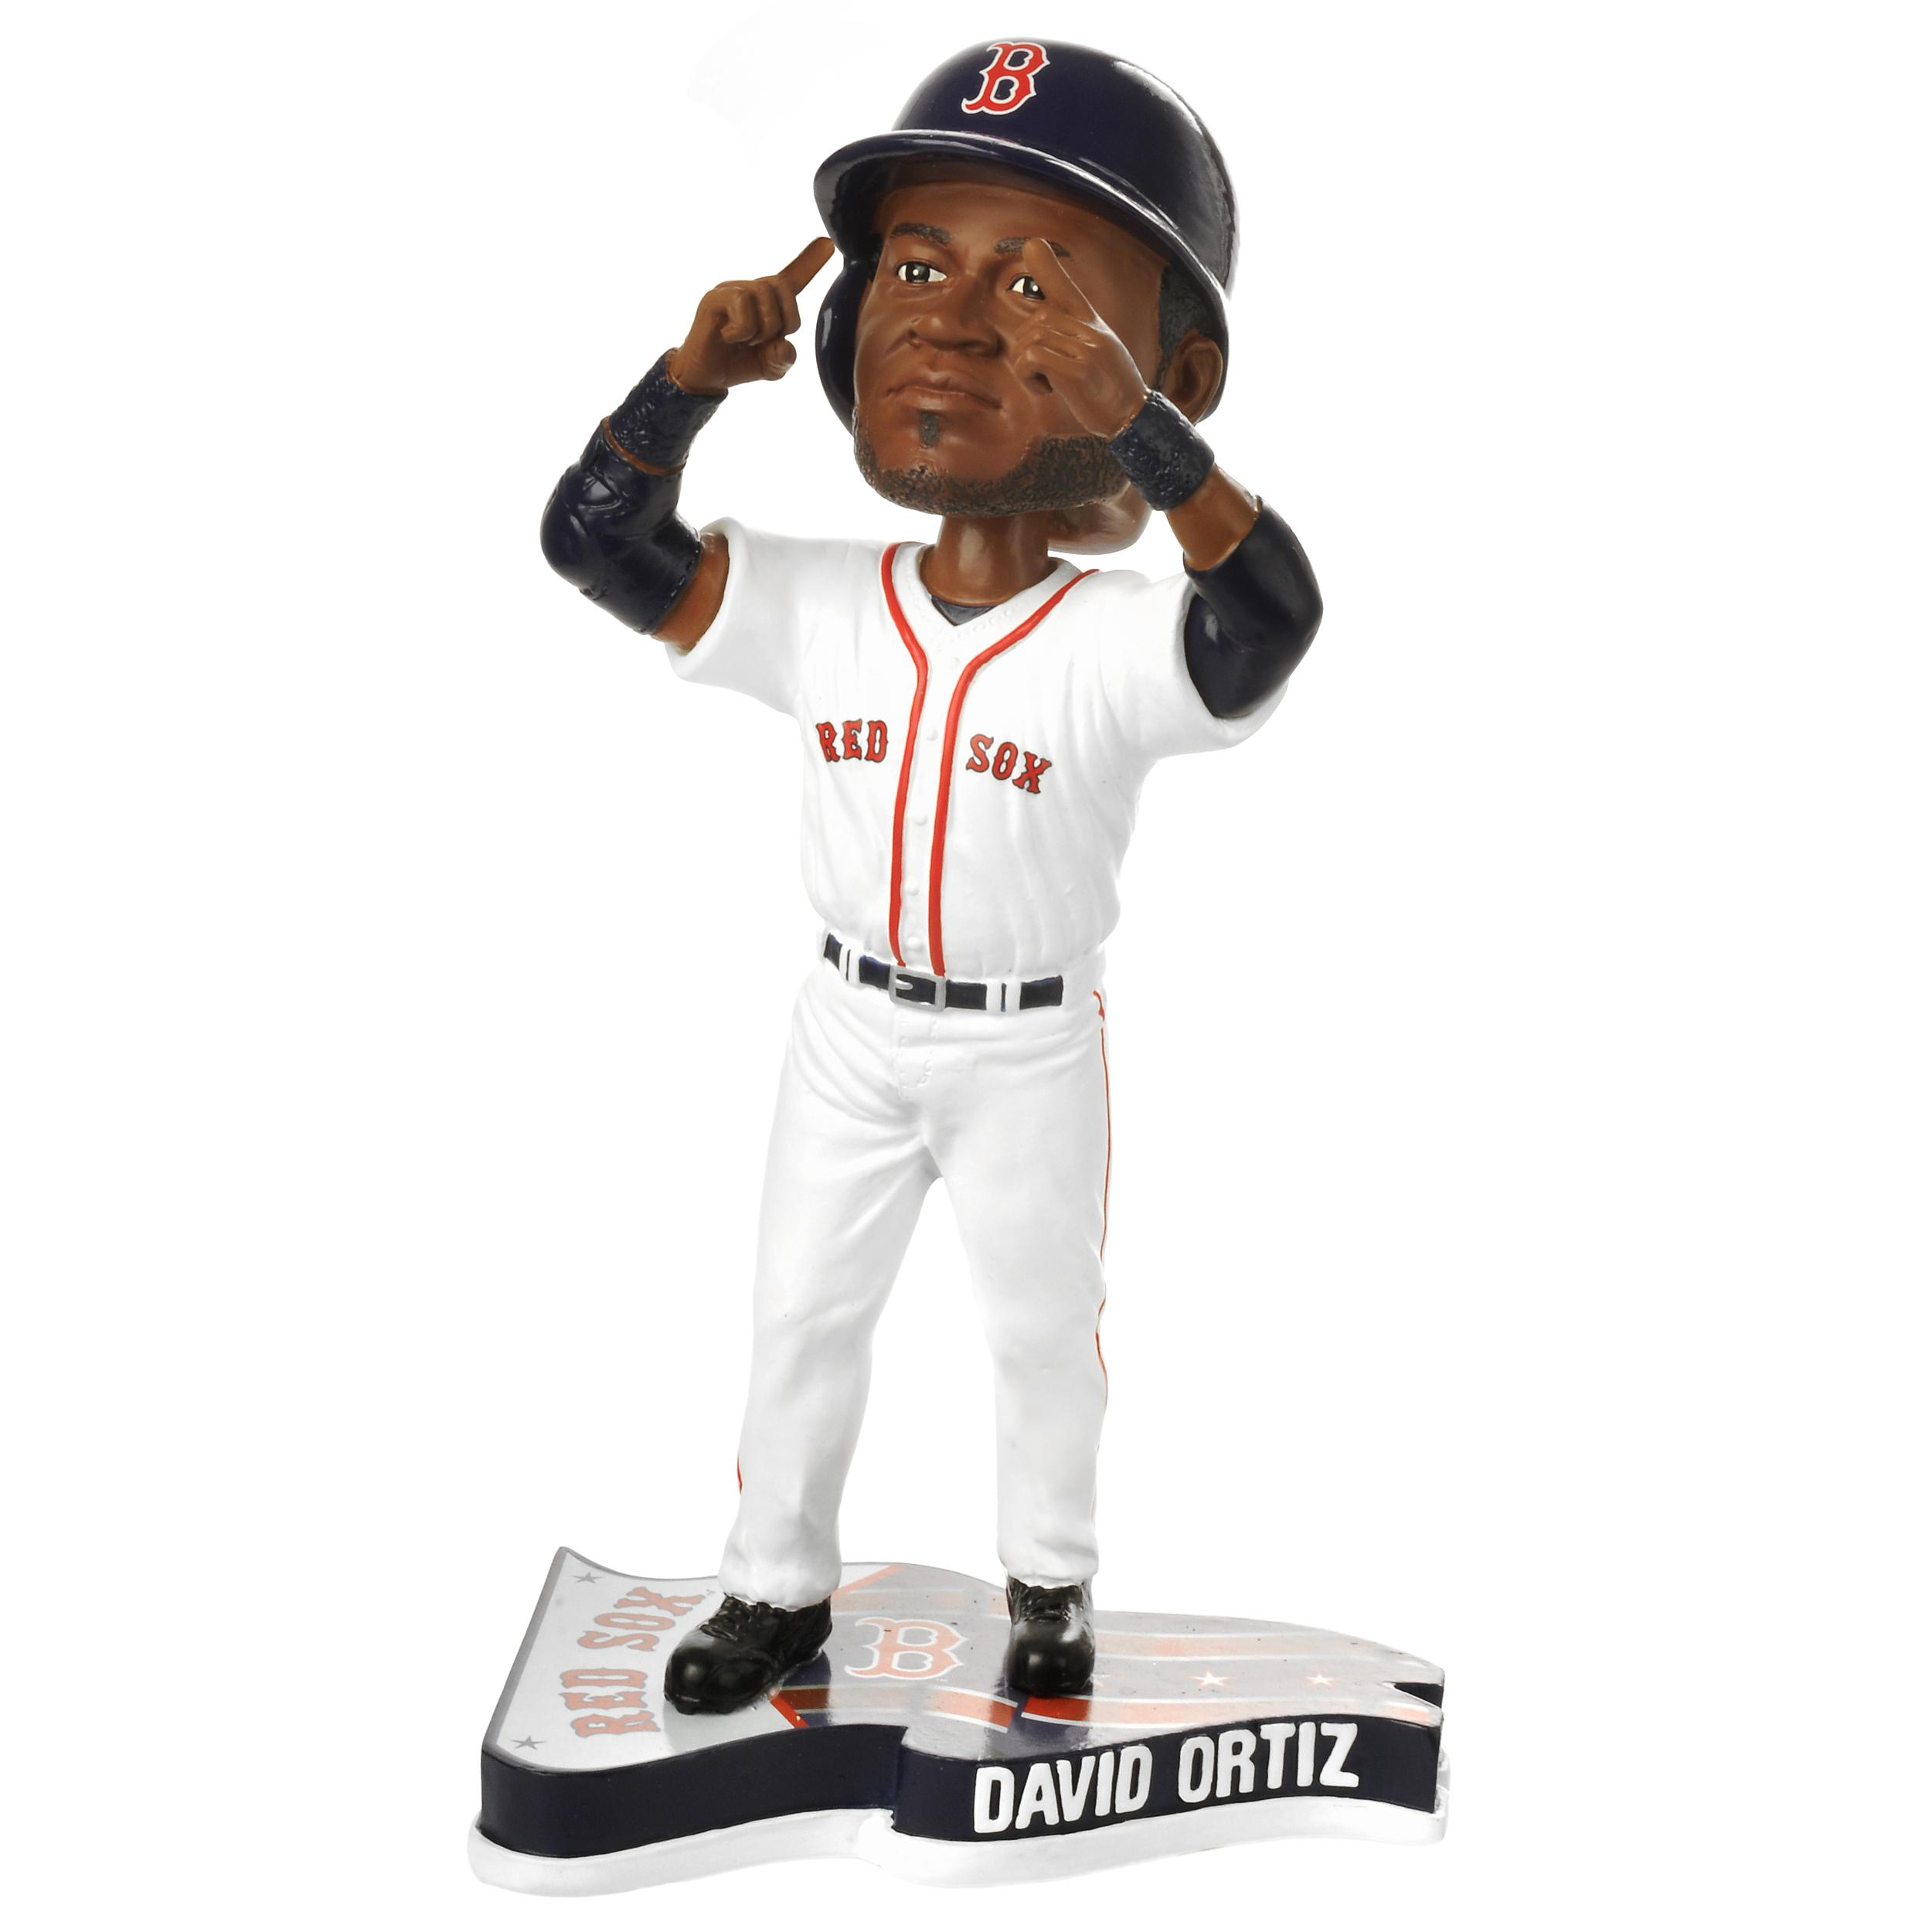 0024-David-Ortiz-FC-2013-Bobble